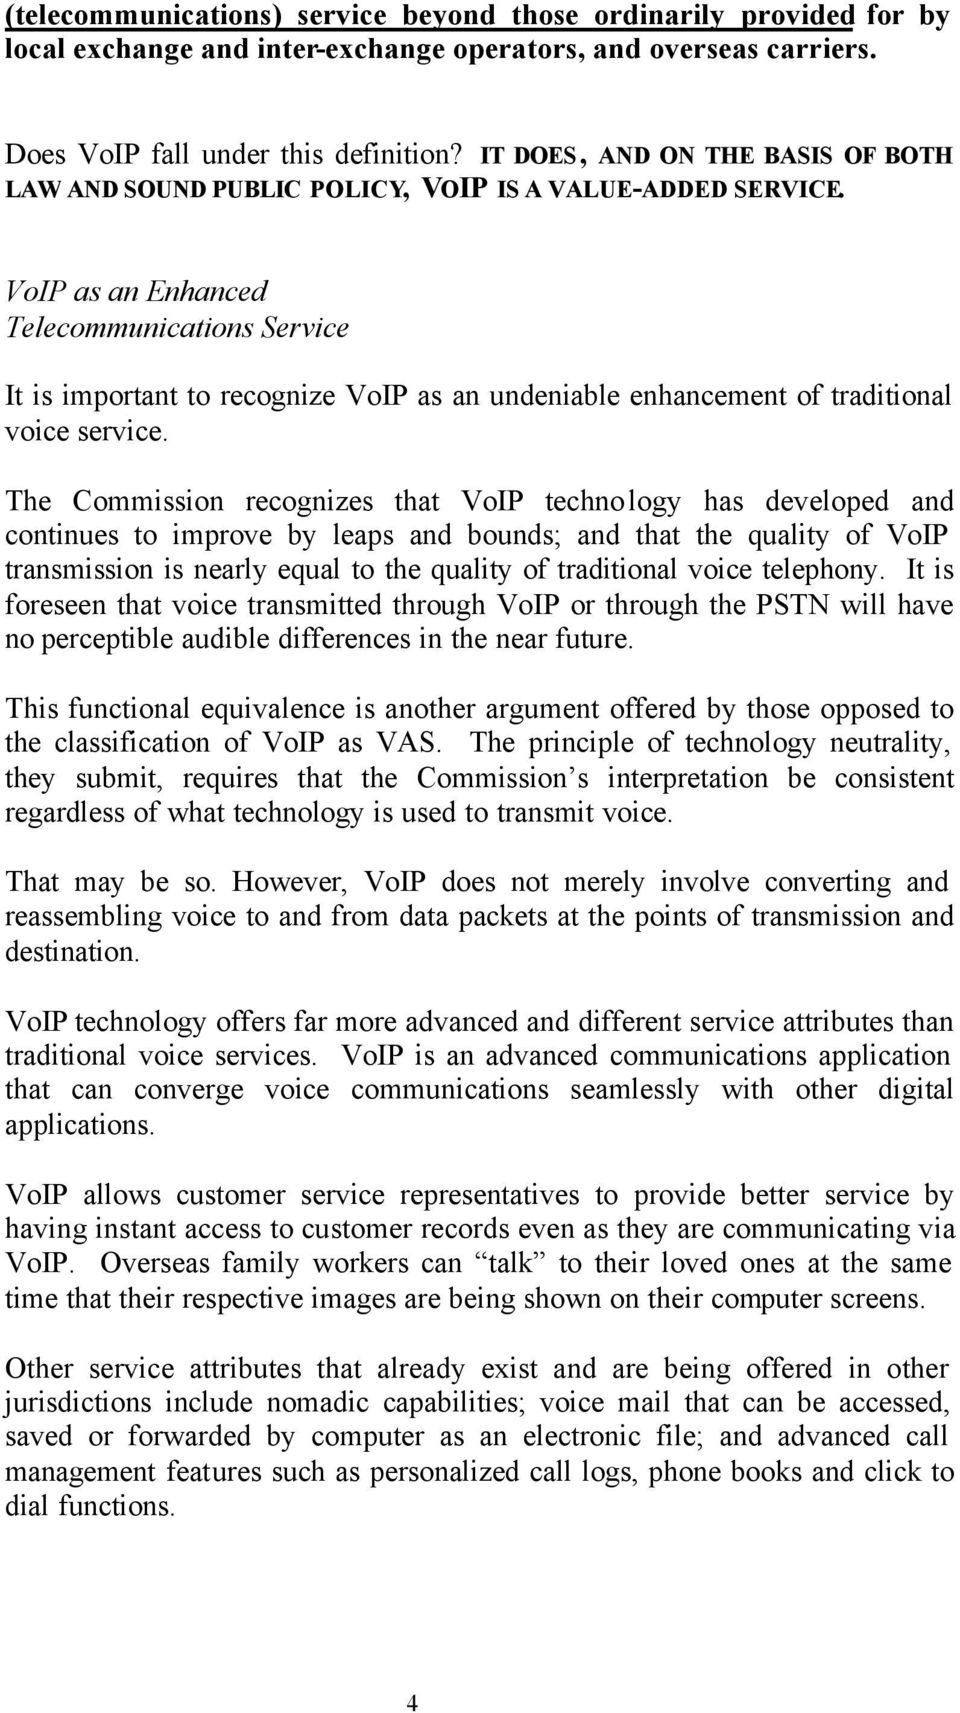 VoIP as an Enhanced Telecommunications Service It is important to recognize VoIP as an undeniable enhancement of traditional voice service.